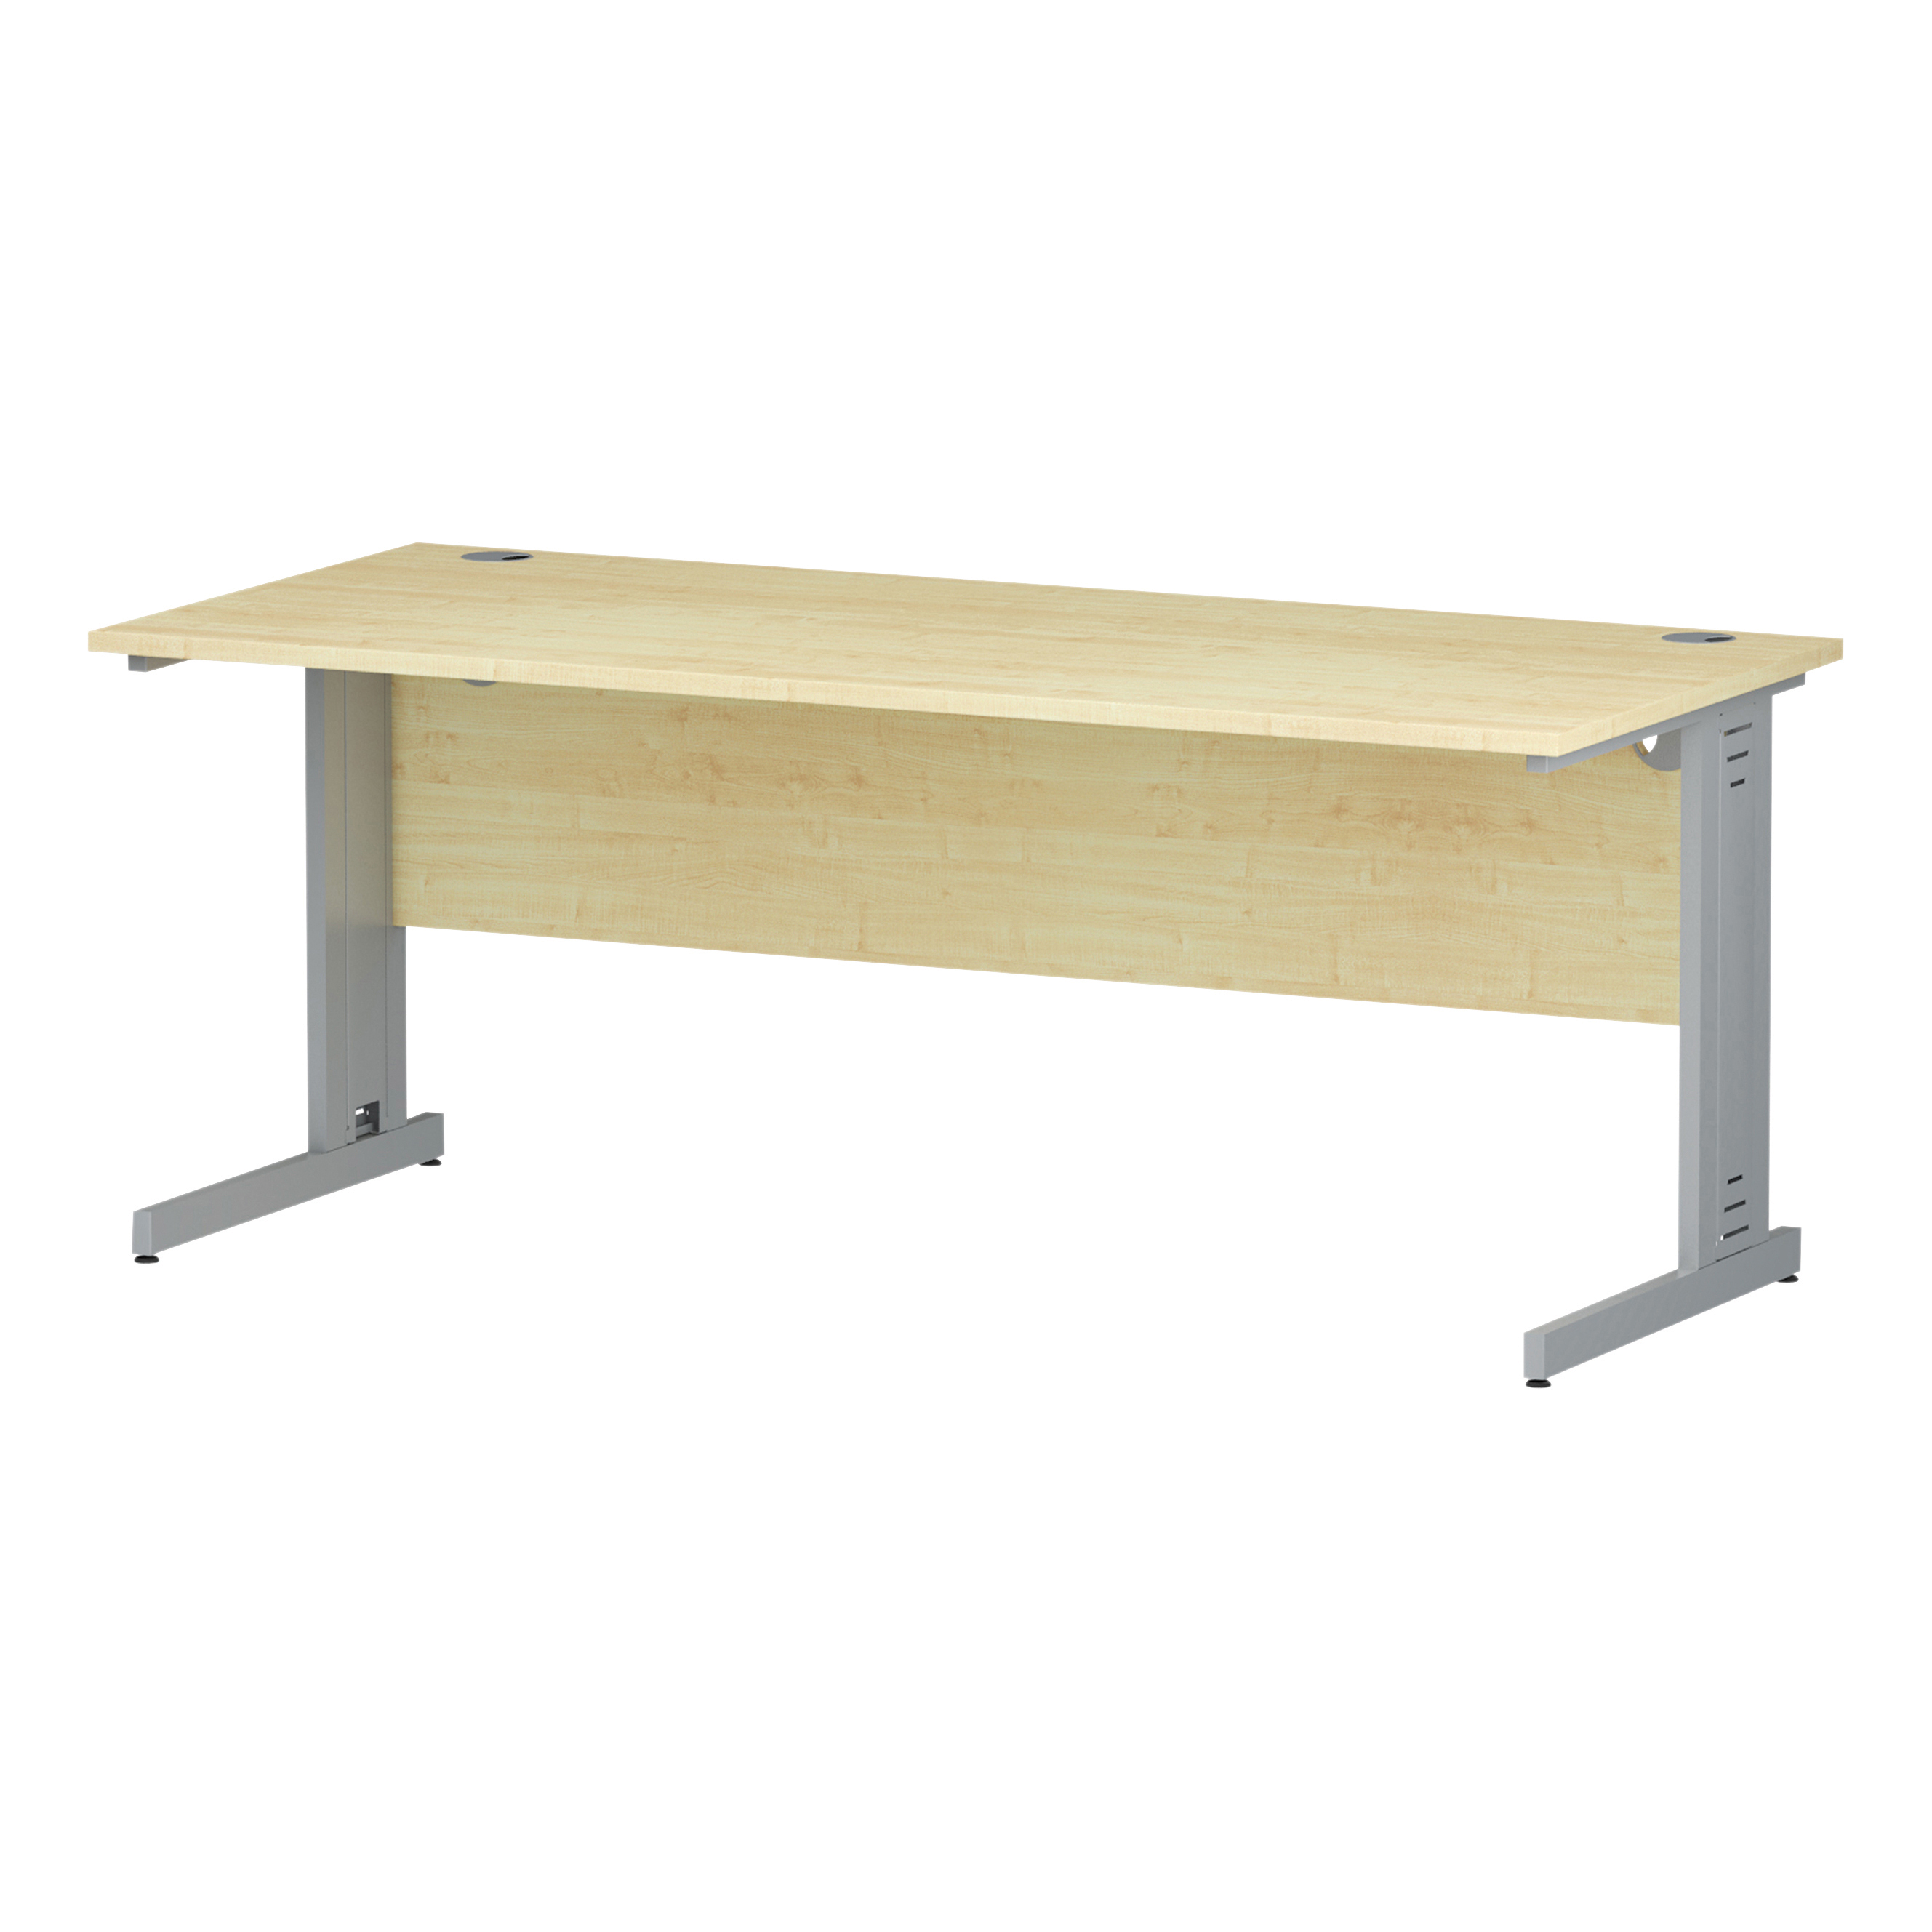 Trexus Rectangular Desk Silver Cable Managed Leg 1800x800mm Maple Ref I000519